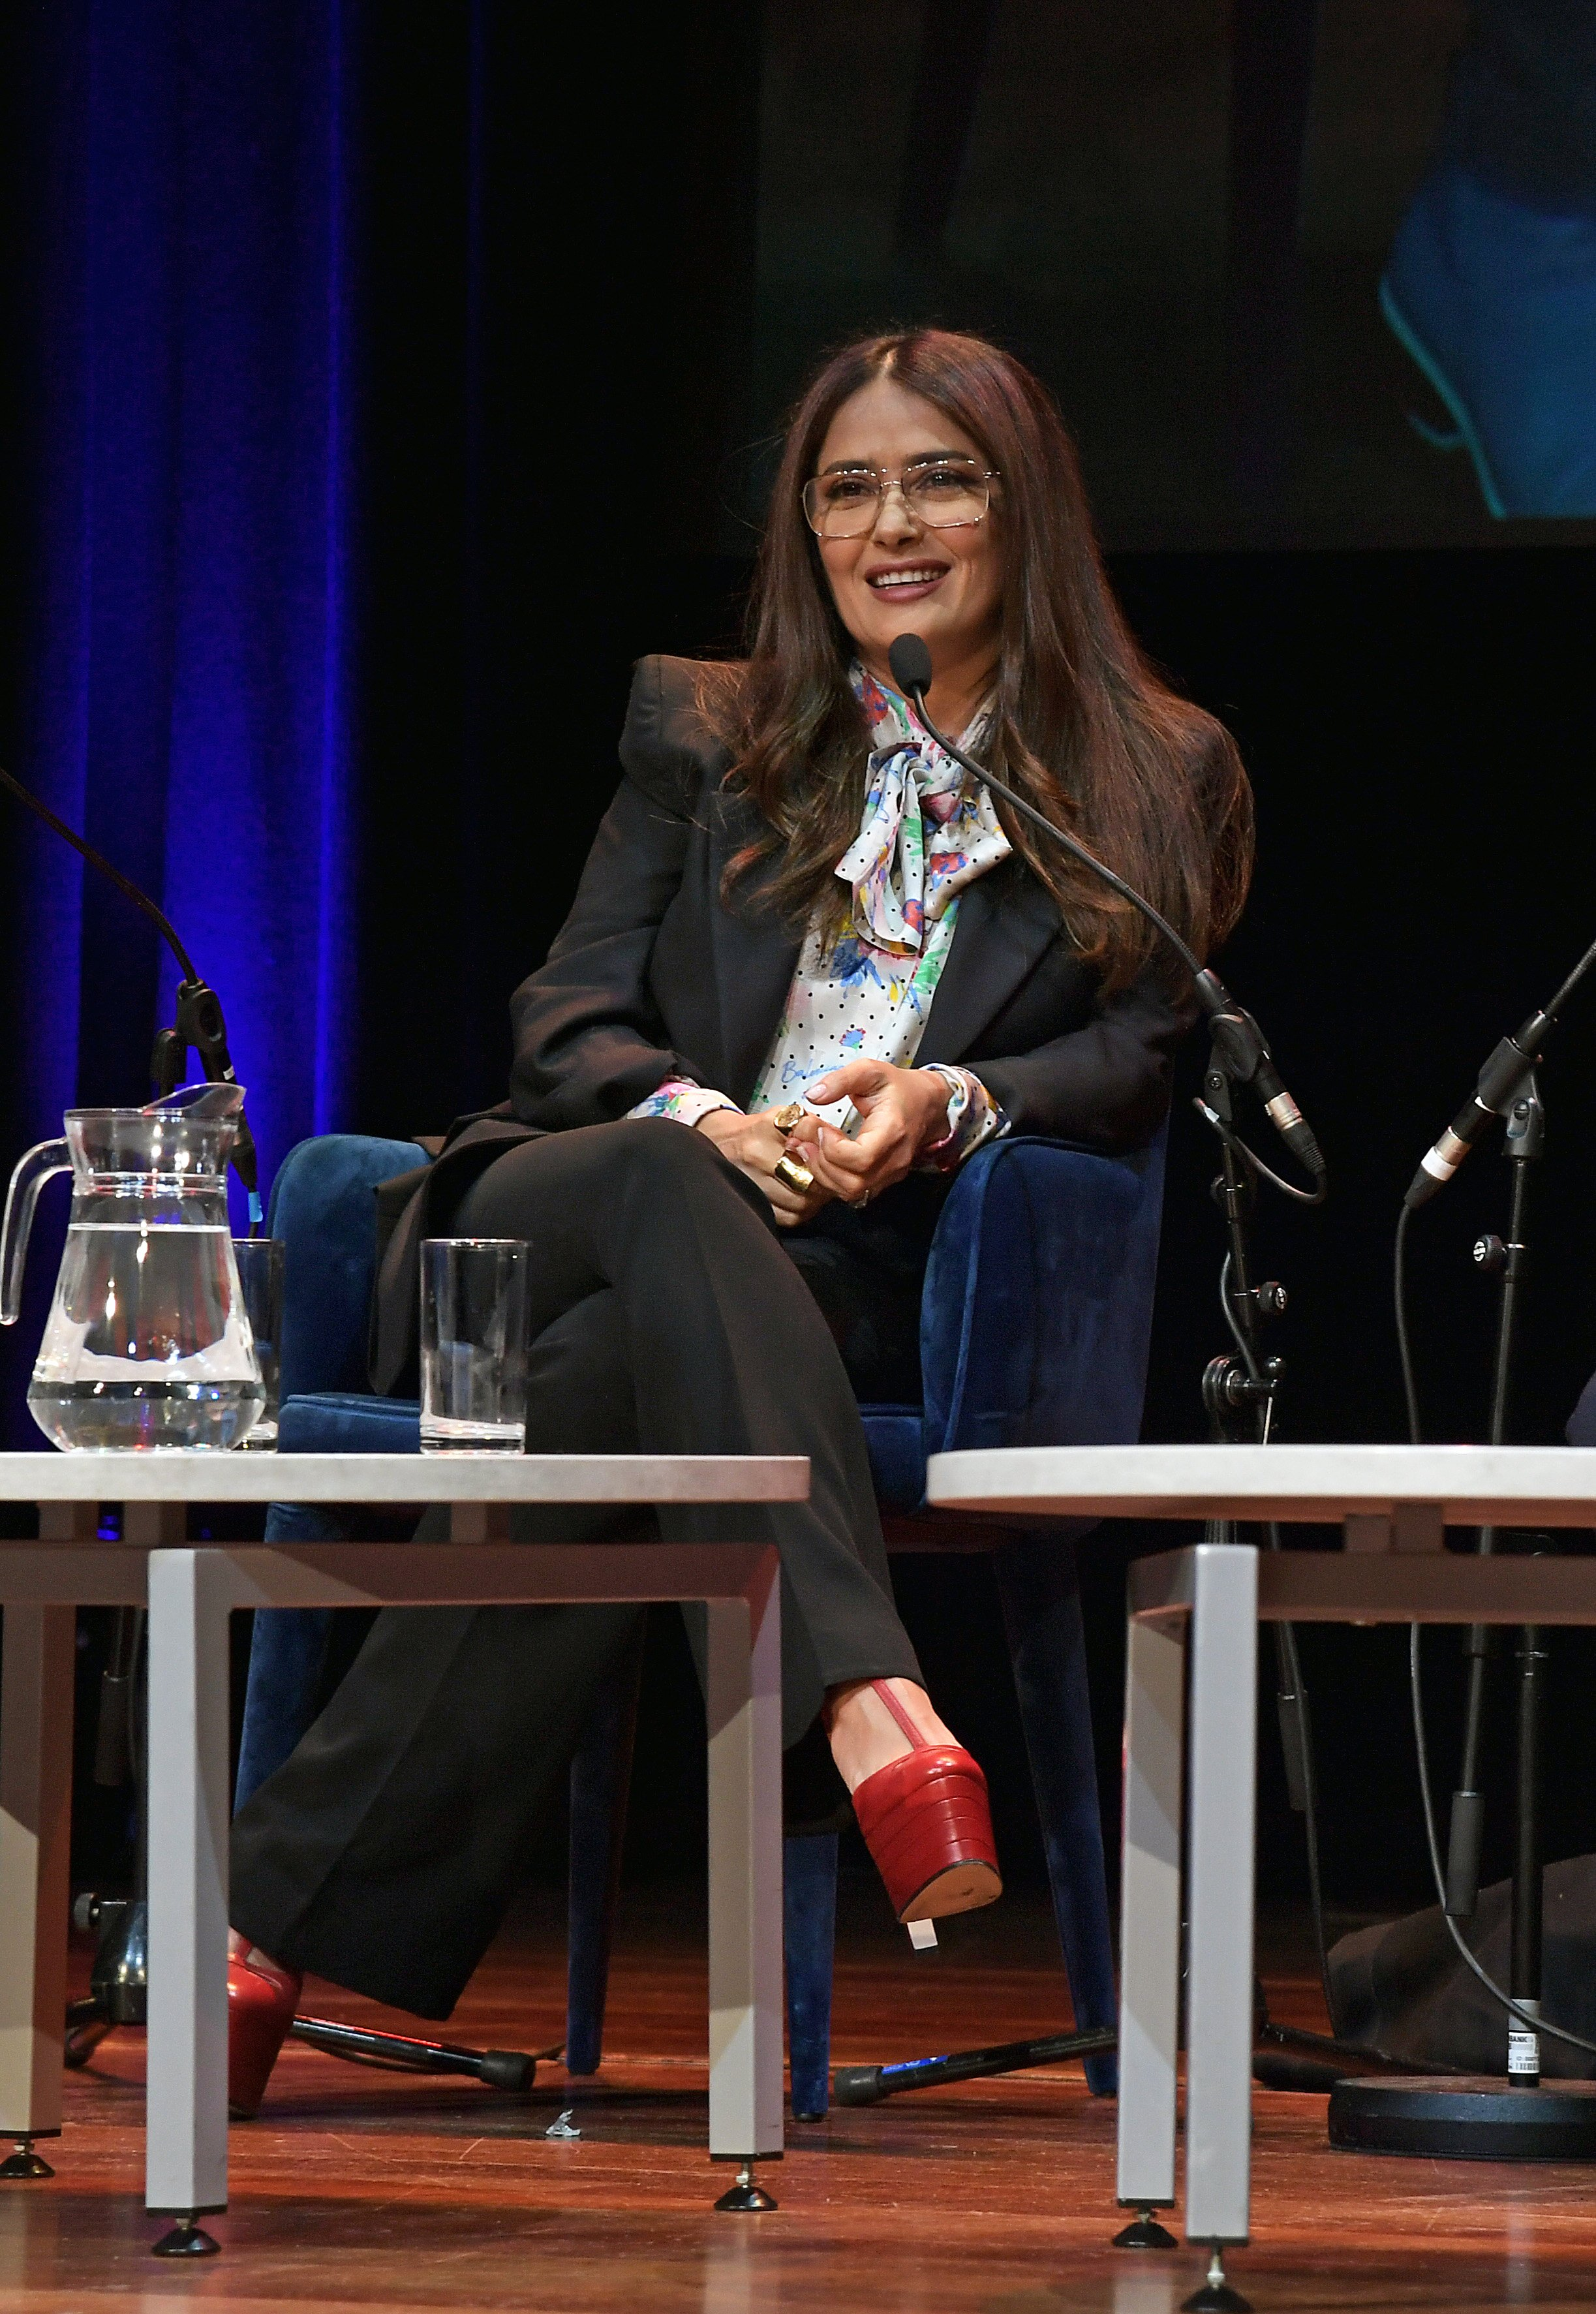 """Salma Hayek participated in the """"Women of The World Festival"""" in London, March, 2020. 